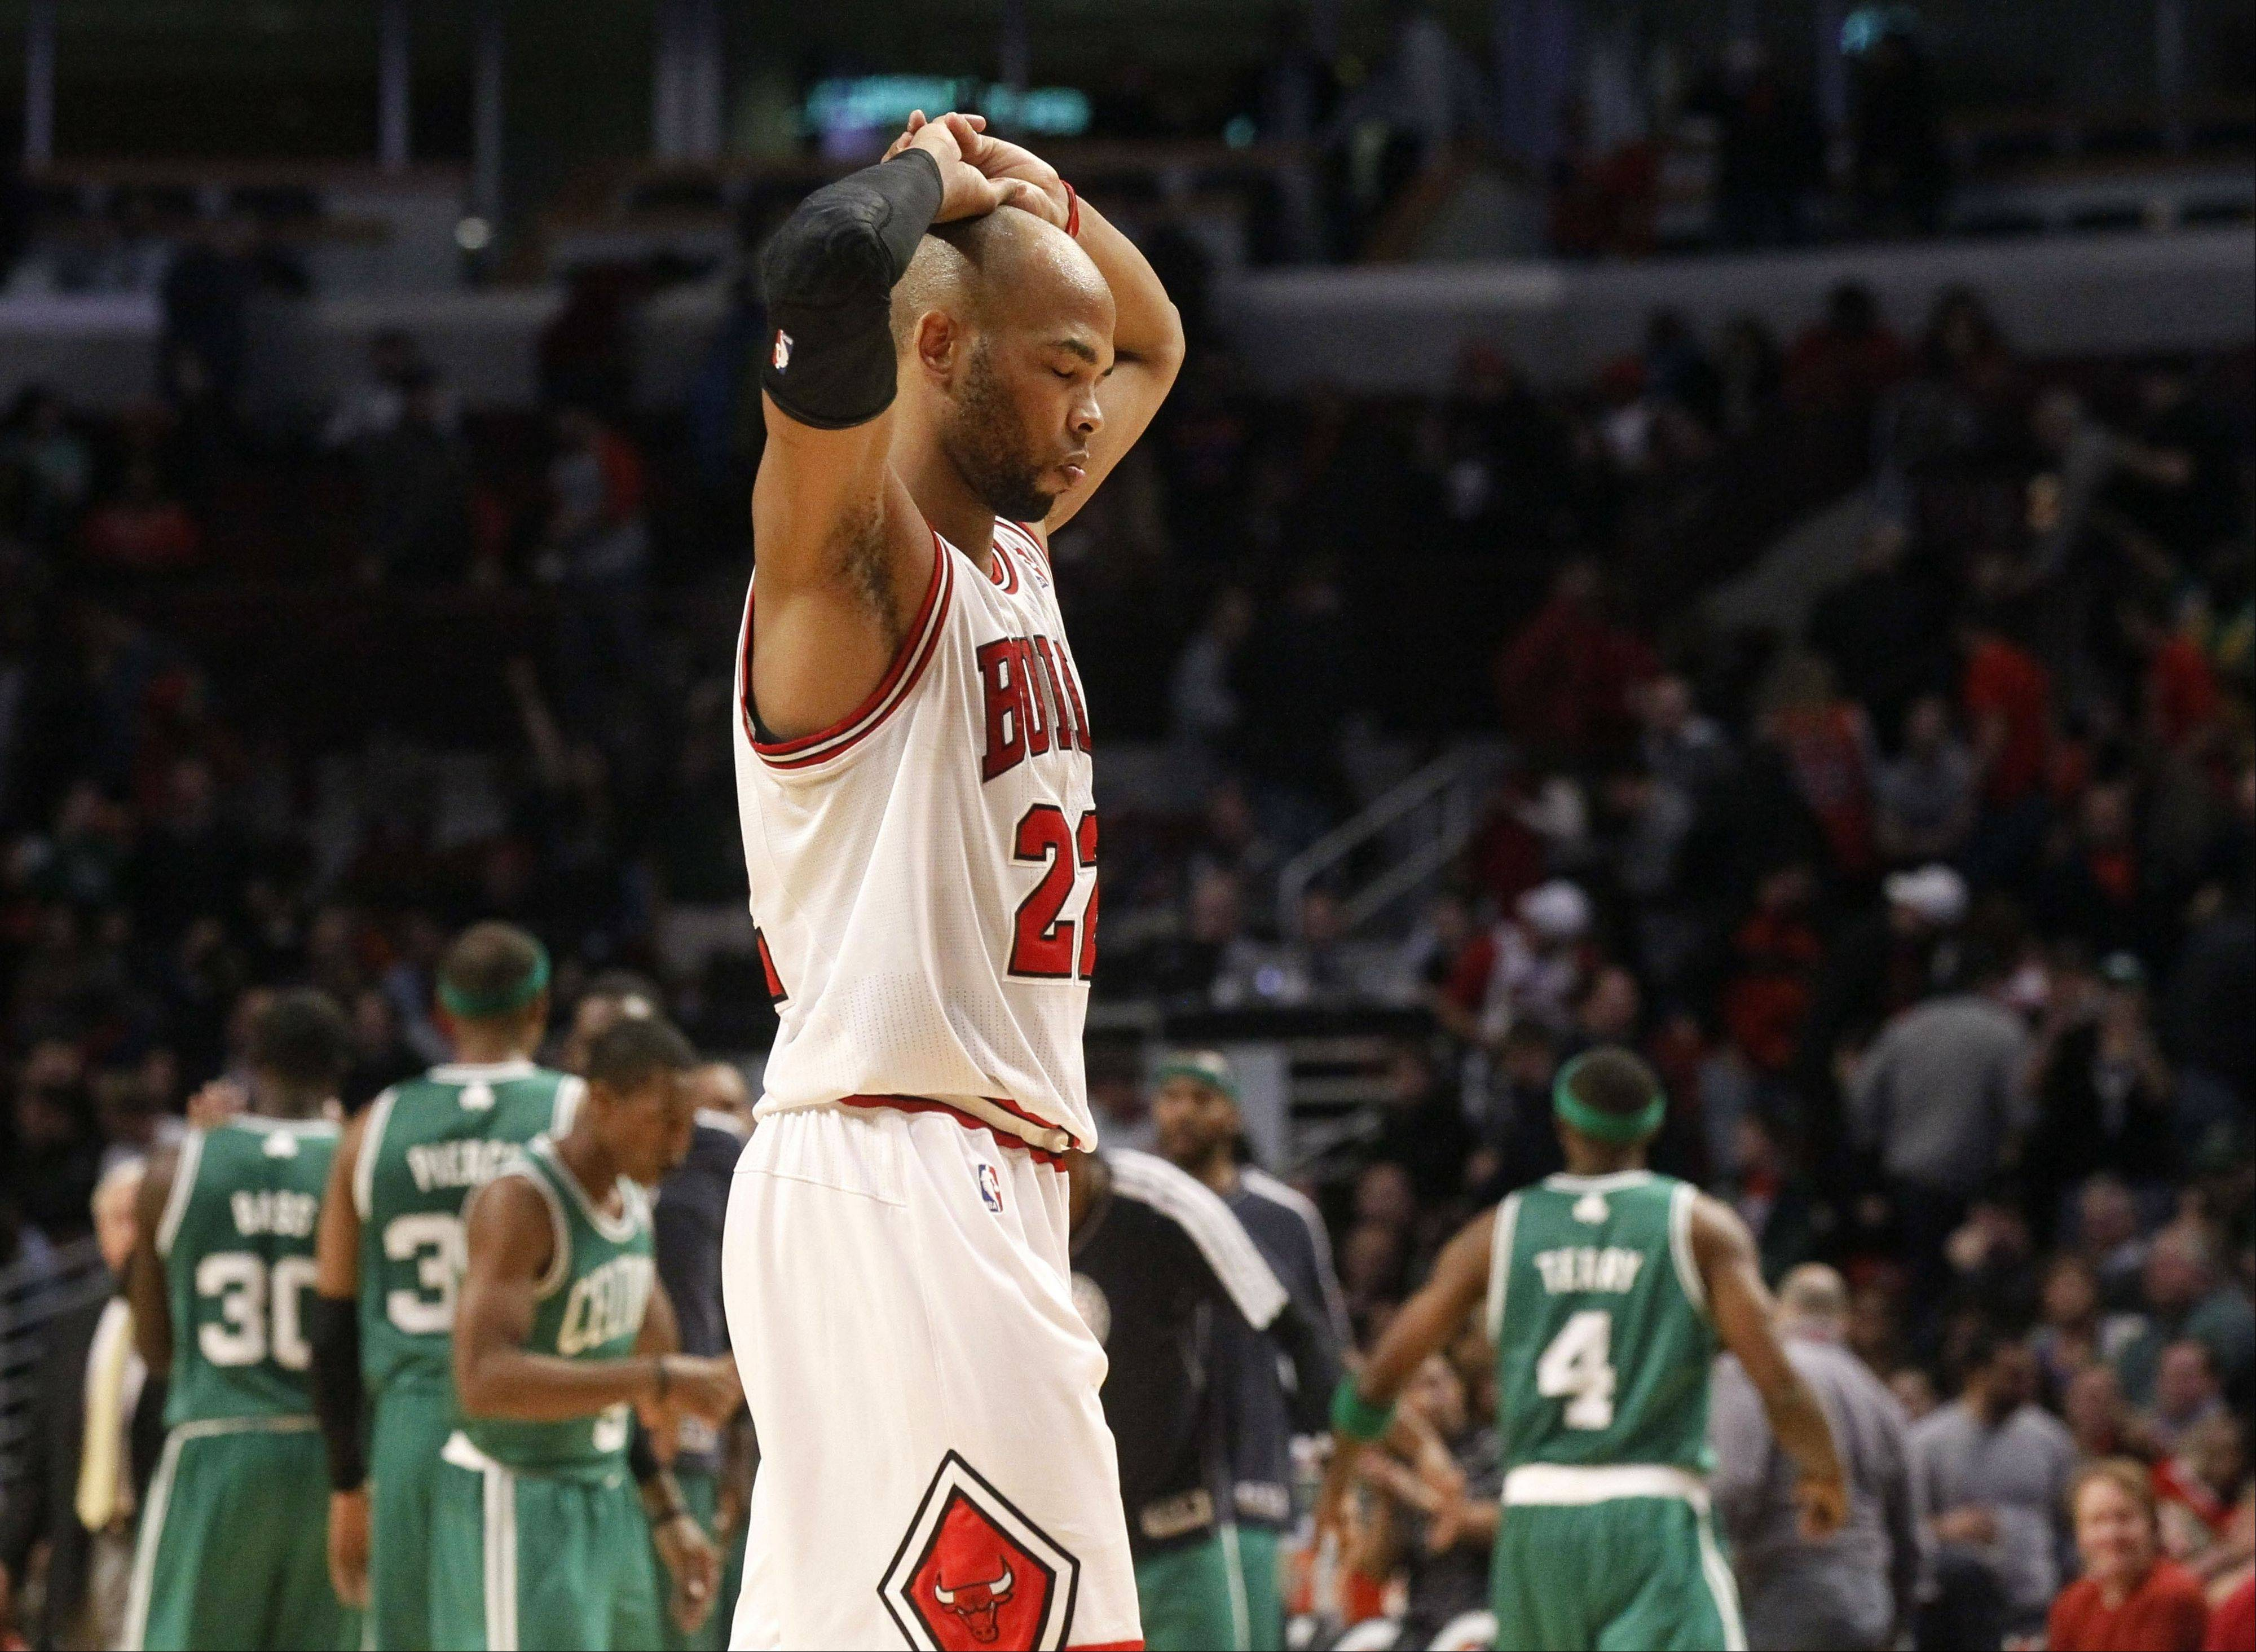 Bulls forward Taj Gibson walks back to the bench during a time out during the closing seconds of Monday�s loss to the Celtice at United Center.